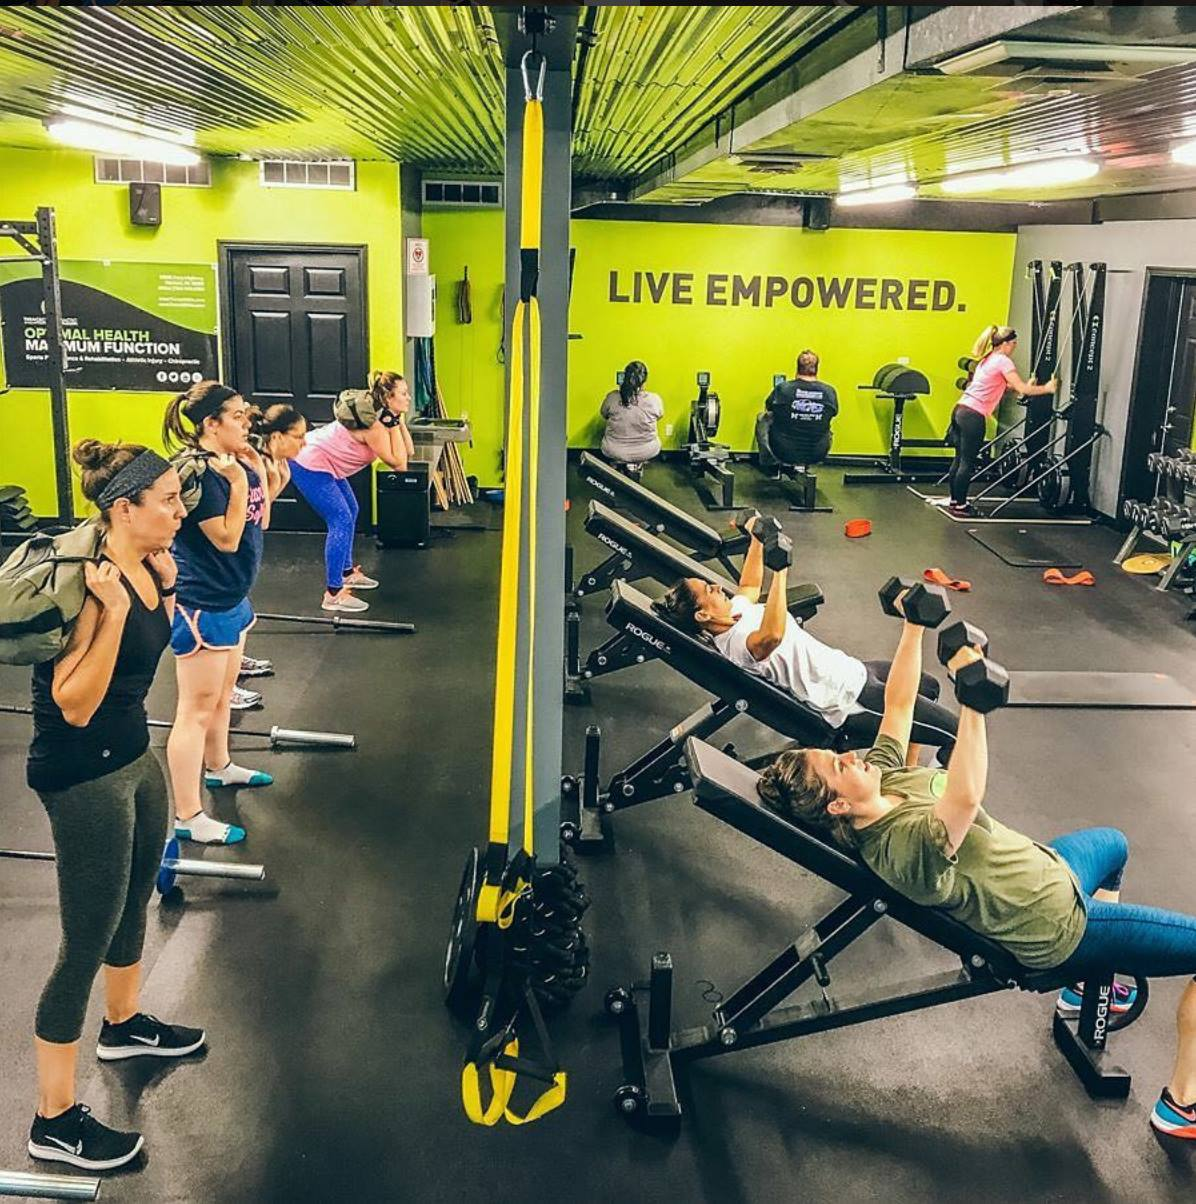 Beat Fitness - Workout Classes in Wexford, Pa.